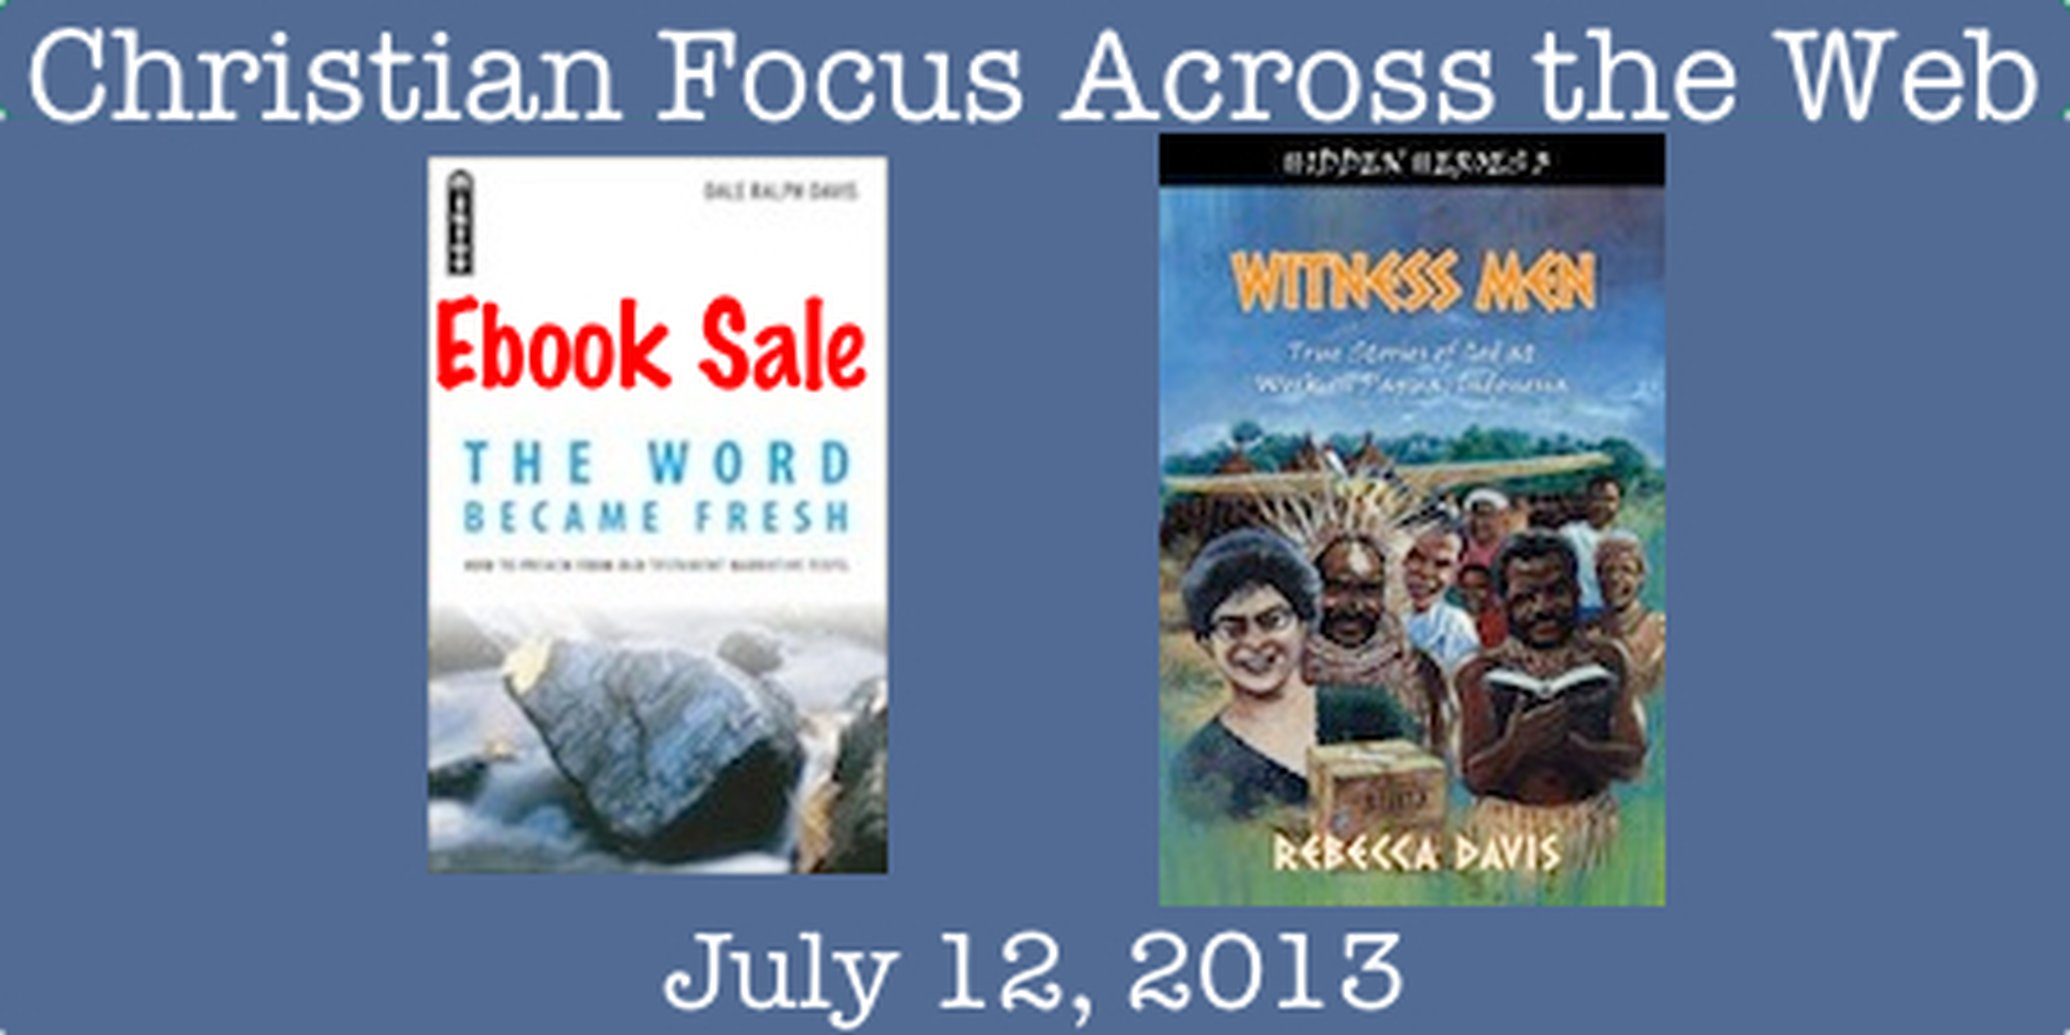 Christian Focus Across the Web - July 12, 2013